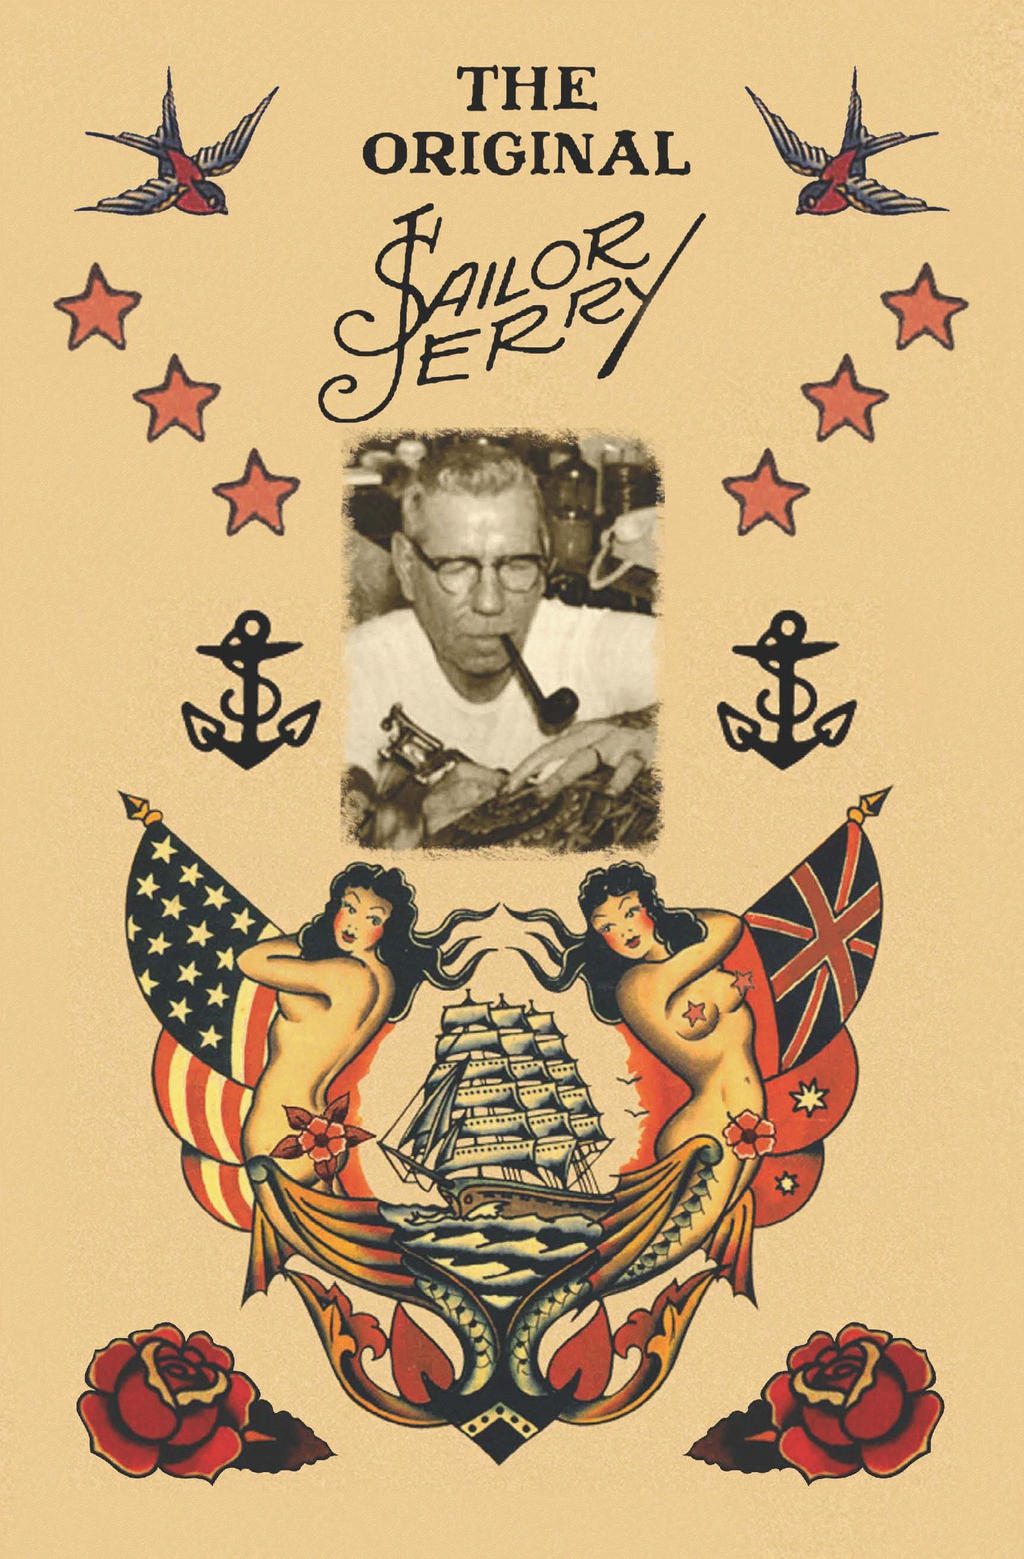 Sailor jerry cover by reformed designs on deviantart for Sailor jerry tattoos